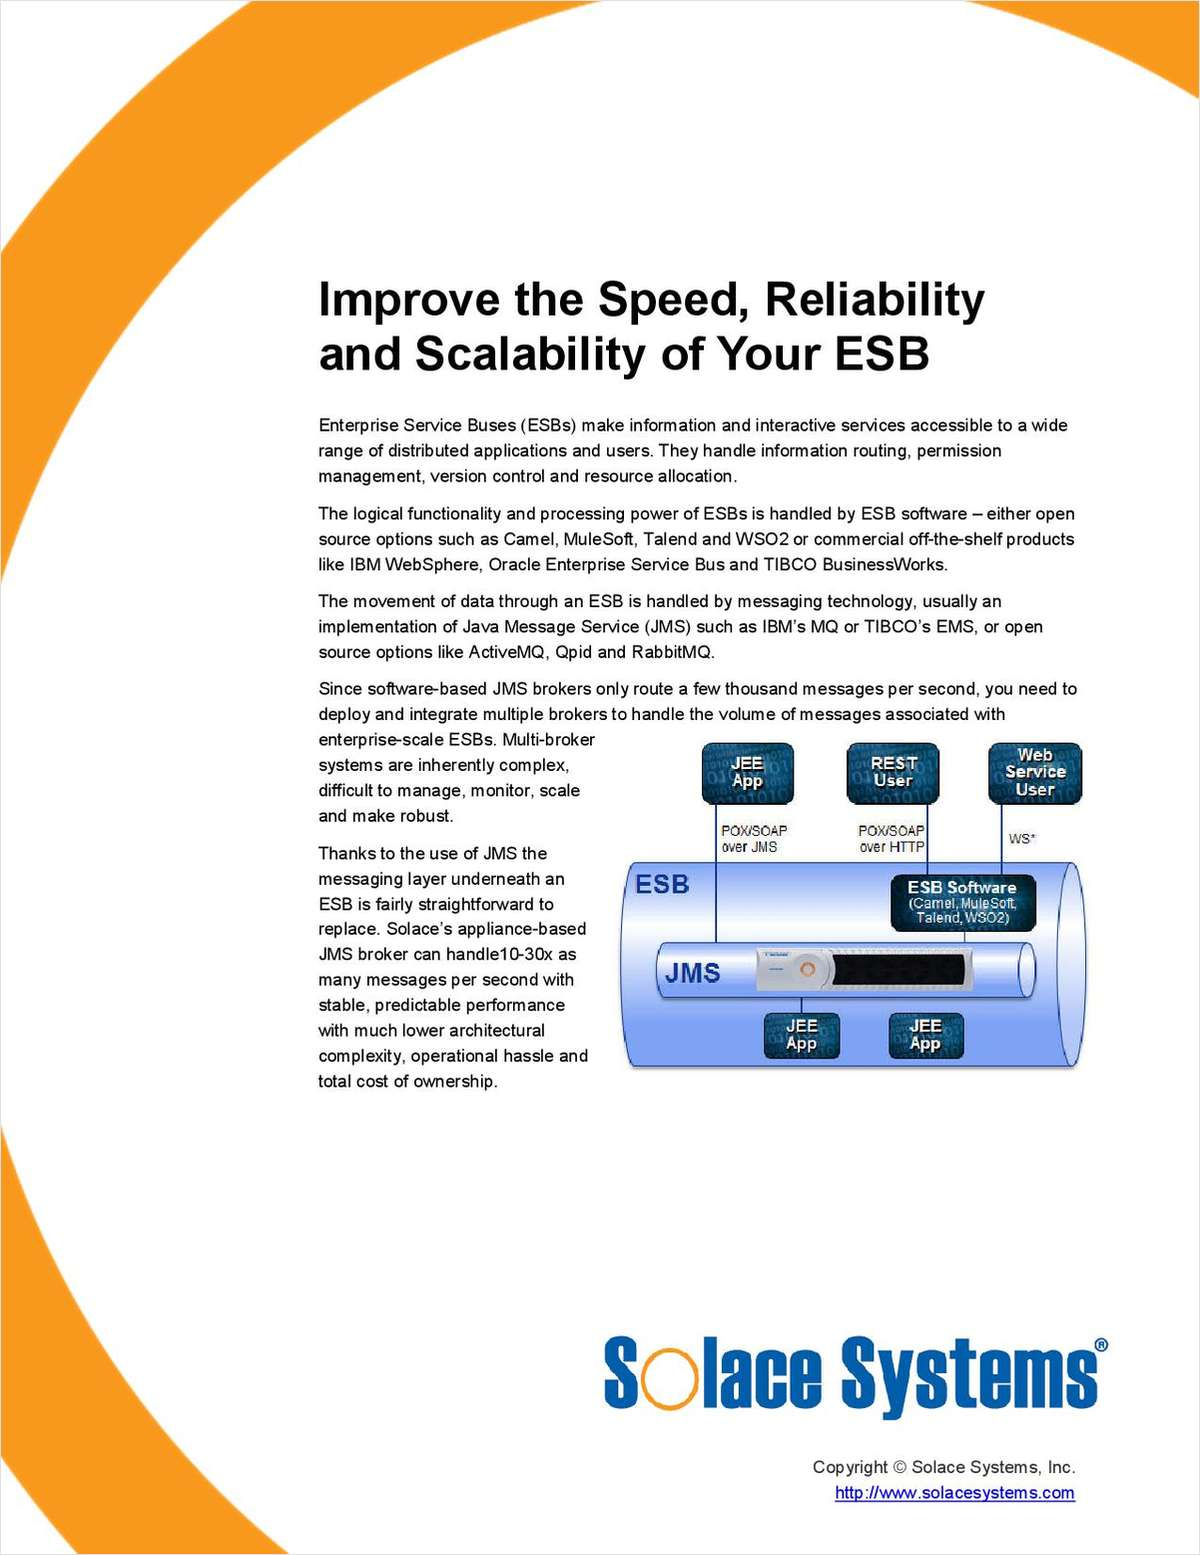 Improve the Speed, Reliability and Scalability of Your ESB